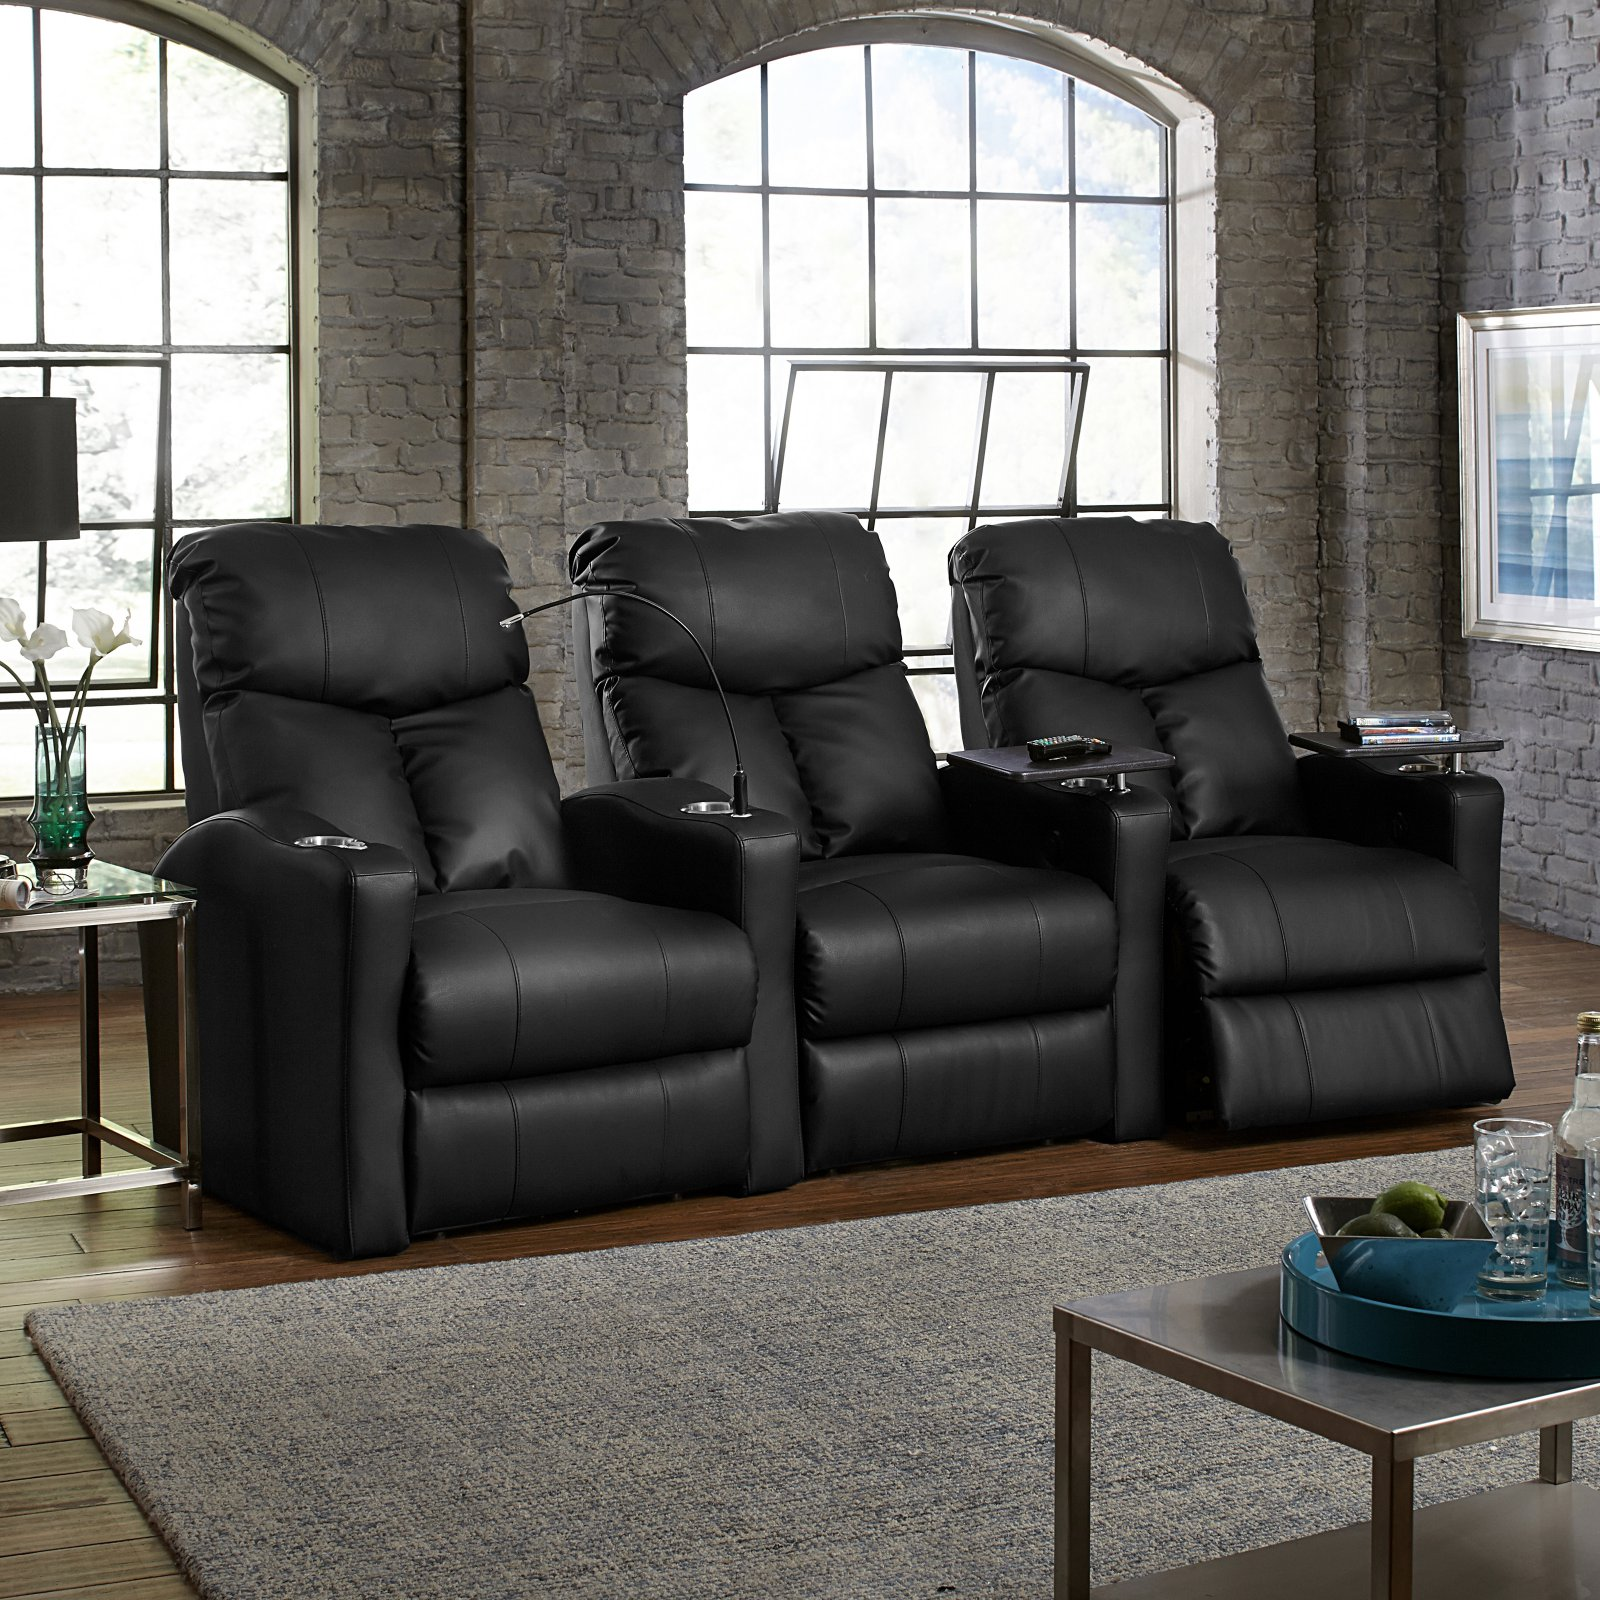 Octane Bolt XS400 3 Seater Manual Recline Bonded Leather Home Theater Seating